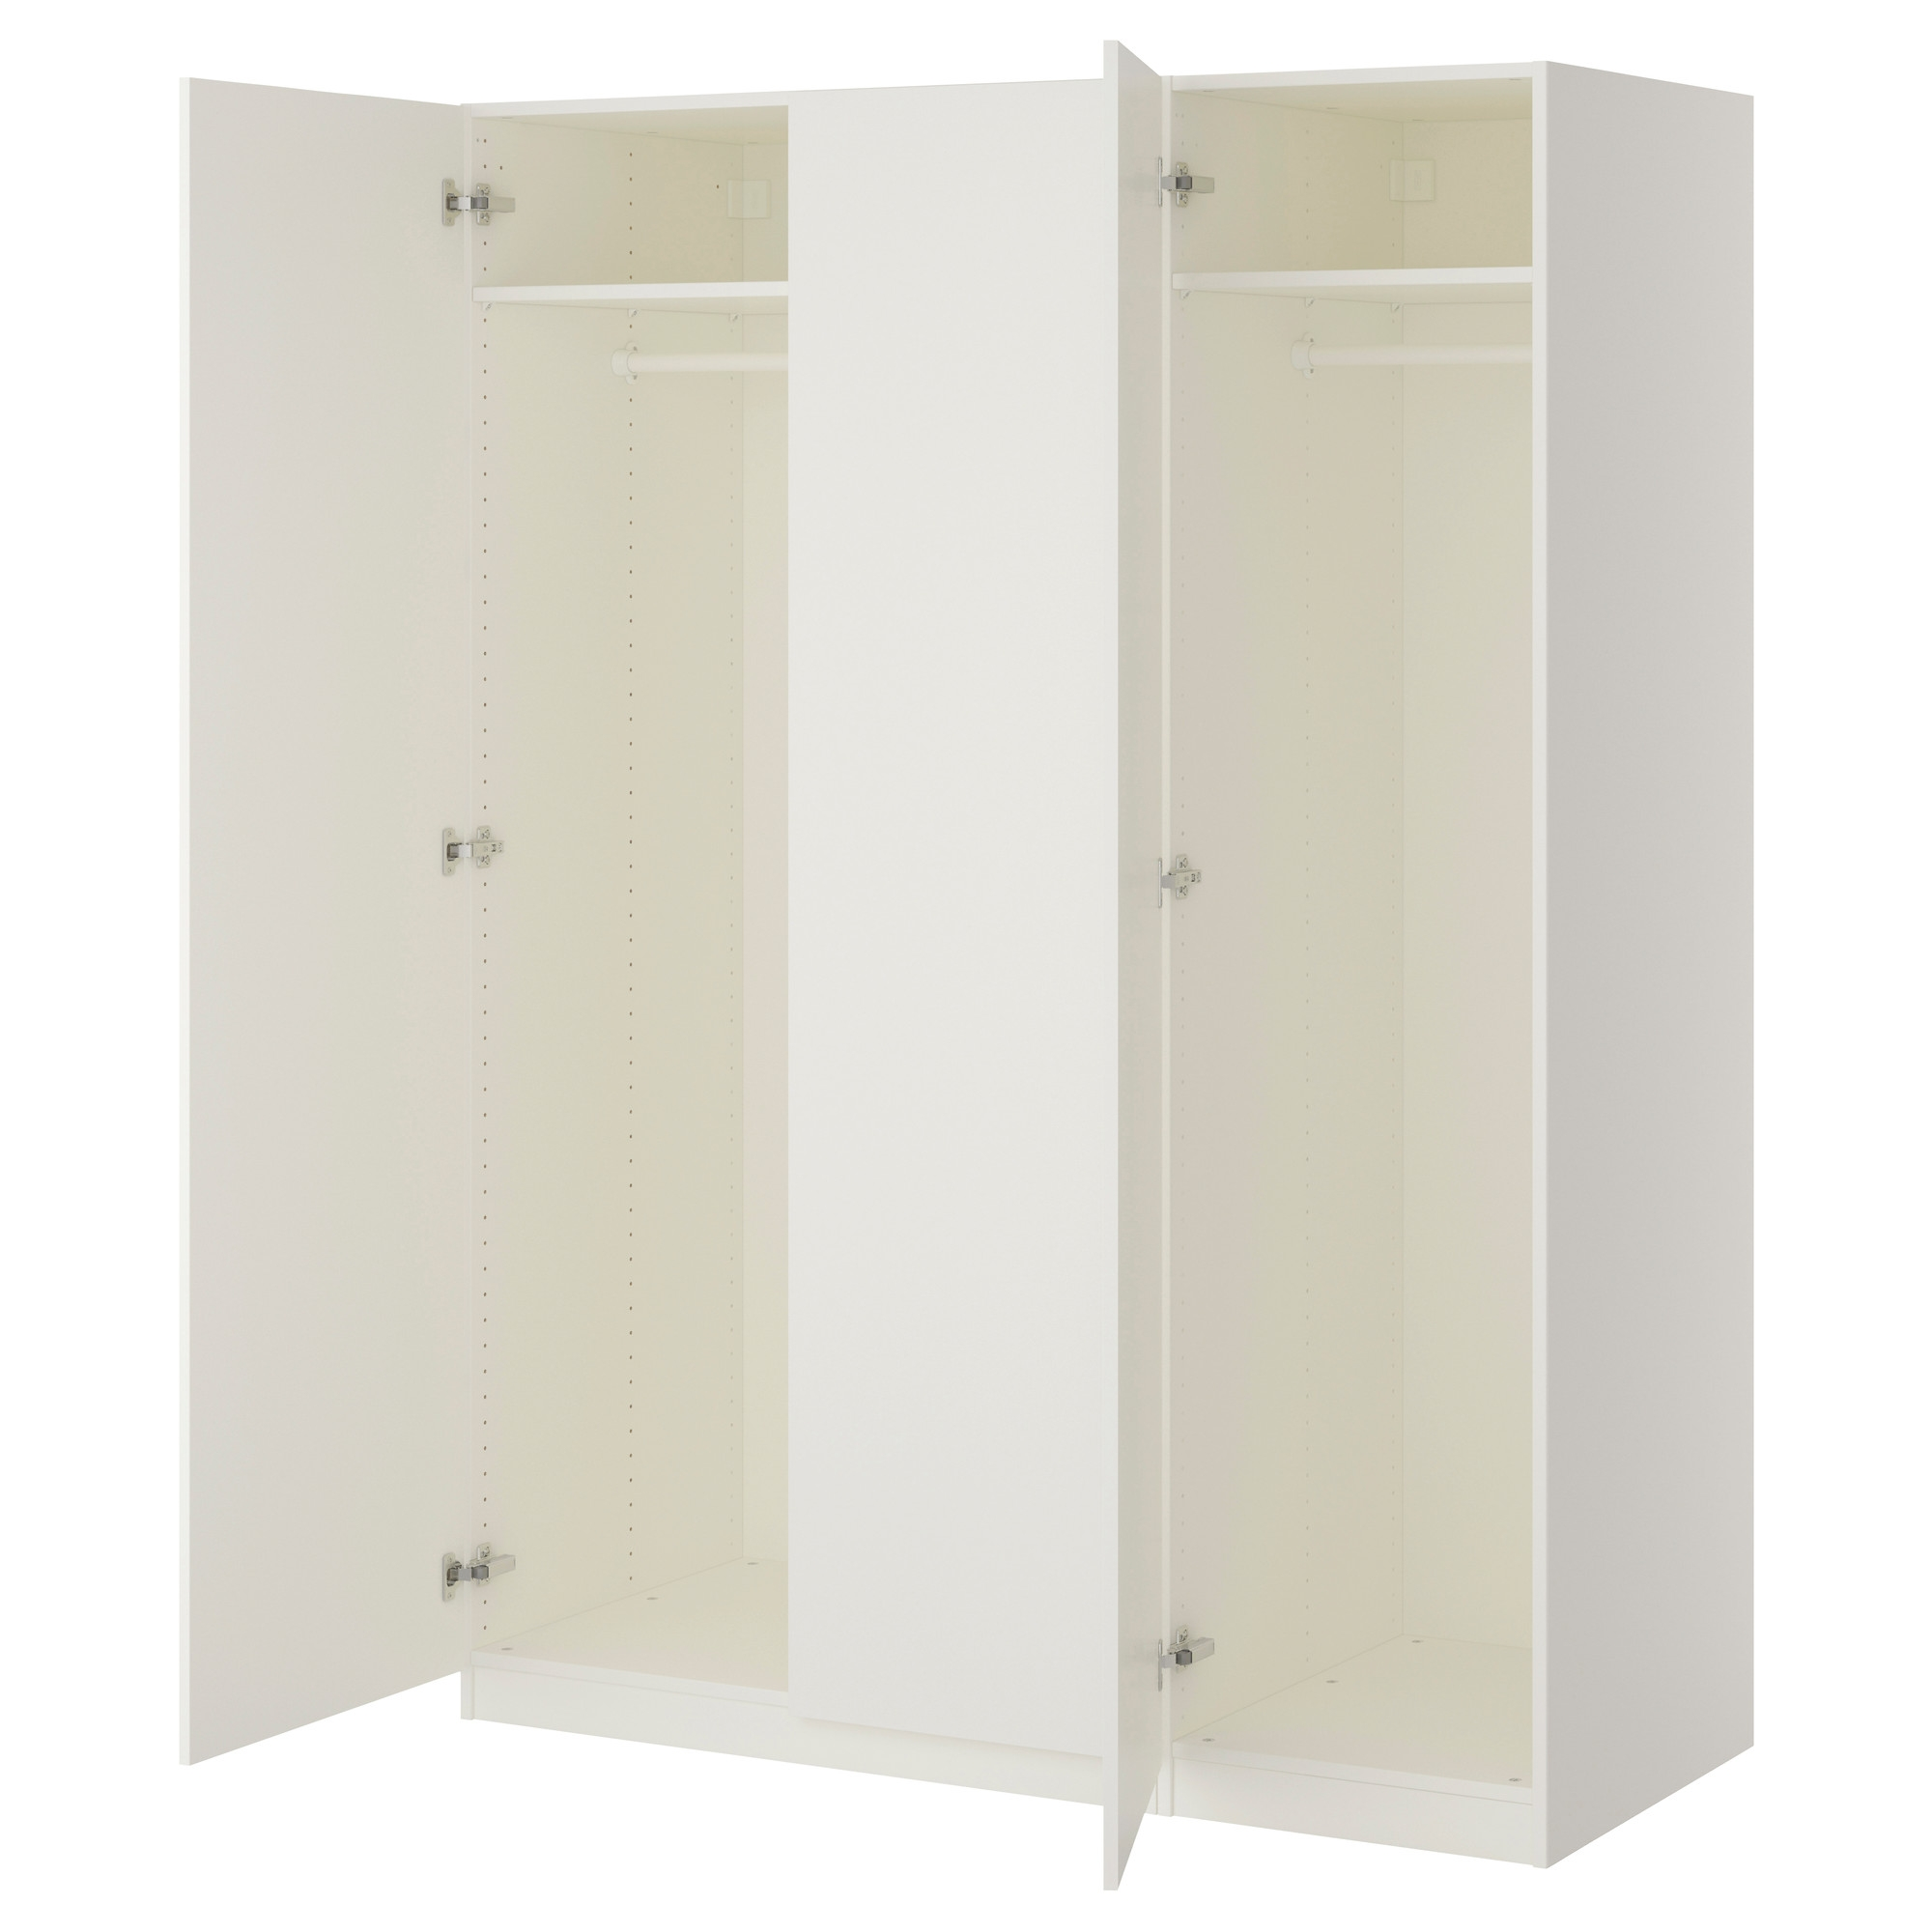 Wardrobes Pax System Ikea Throughout Fitted Wardrobe Depth (View 12 of 15)